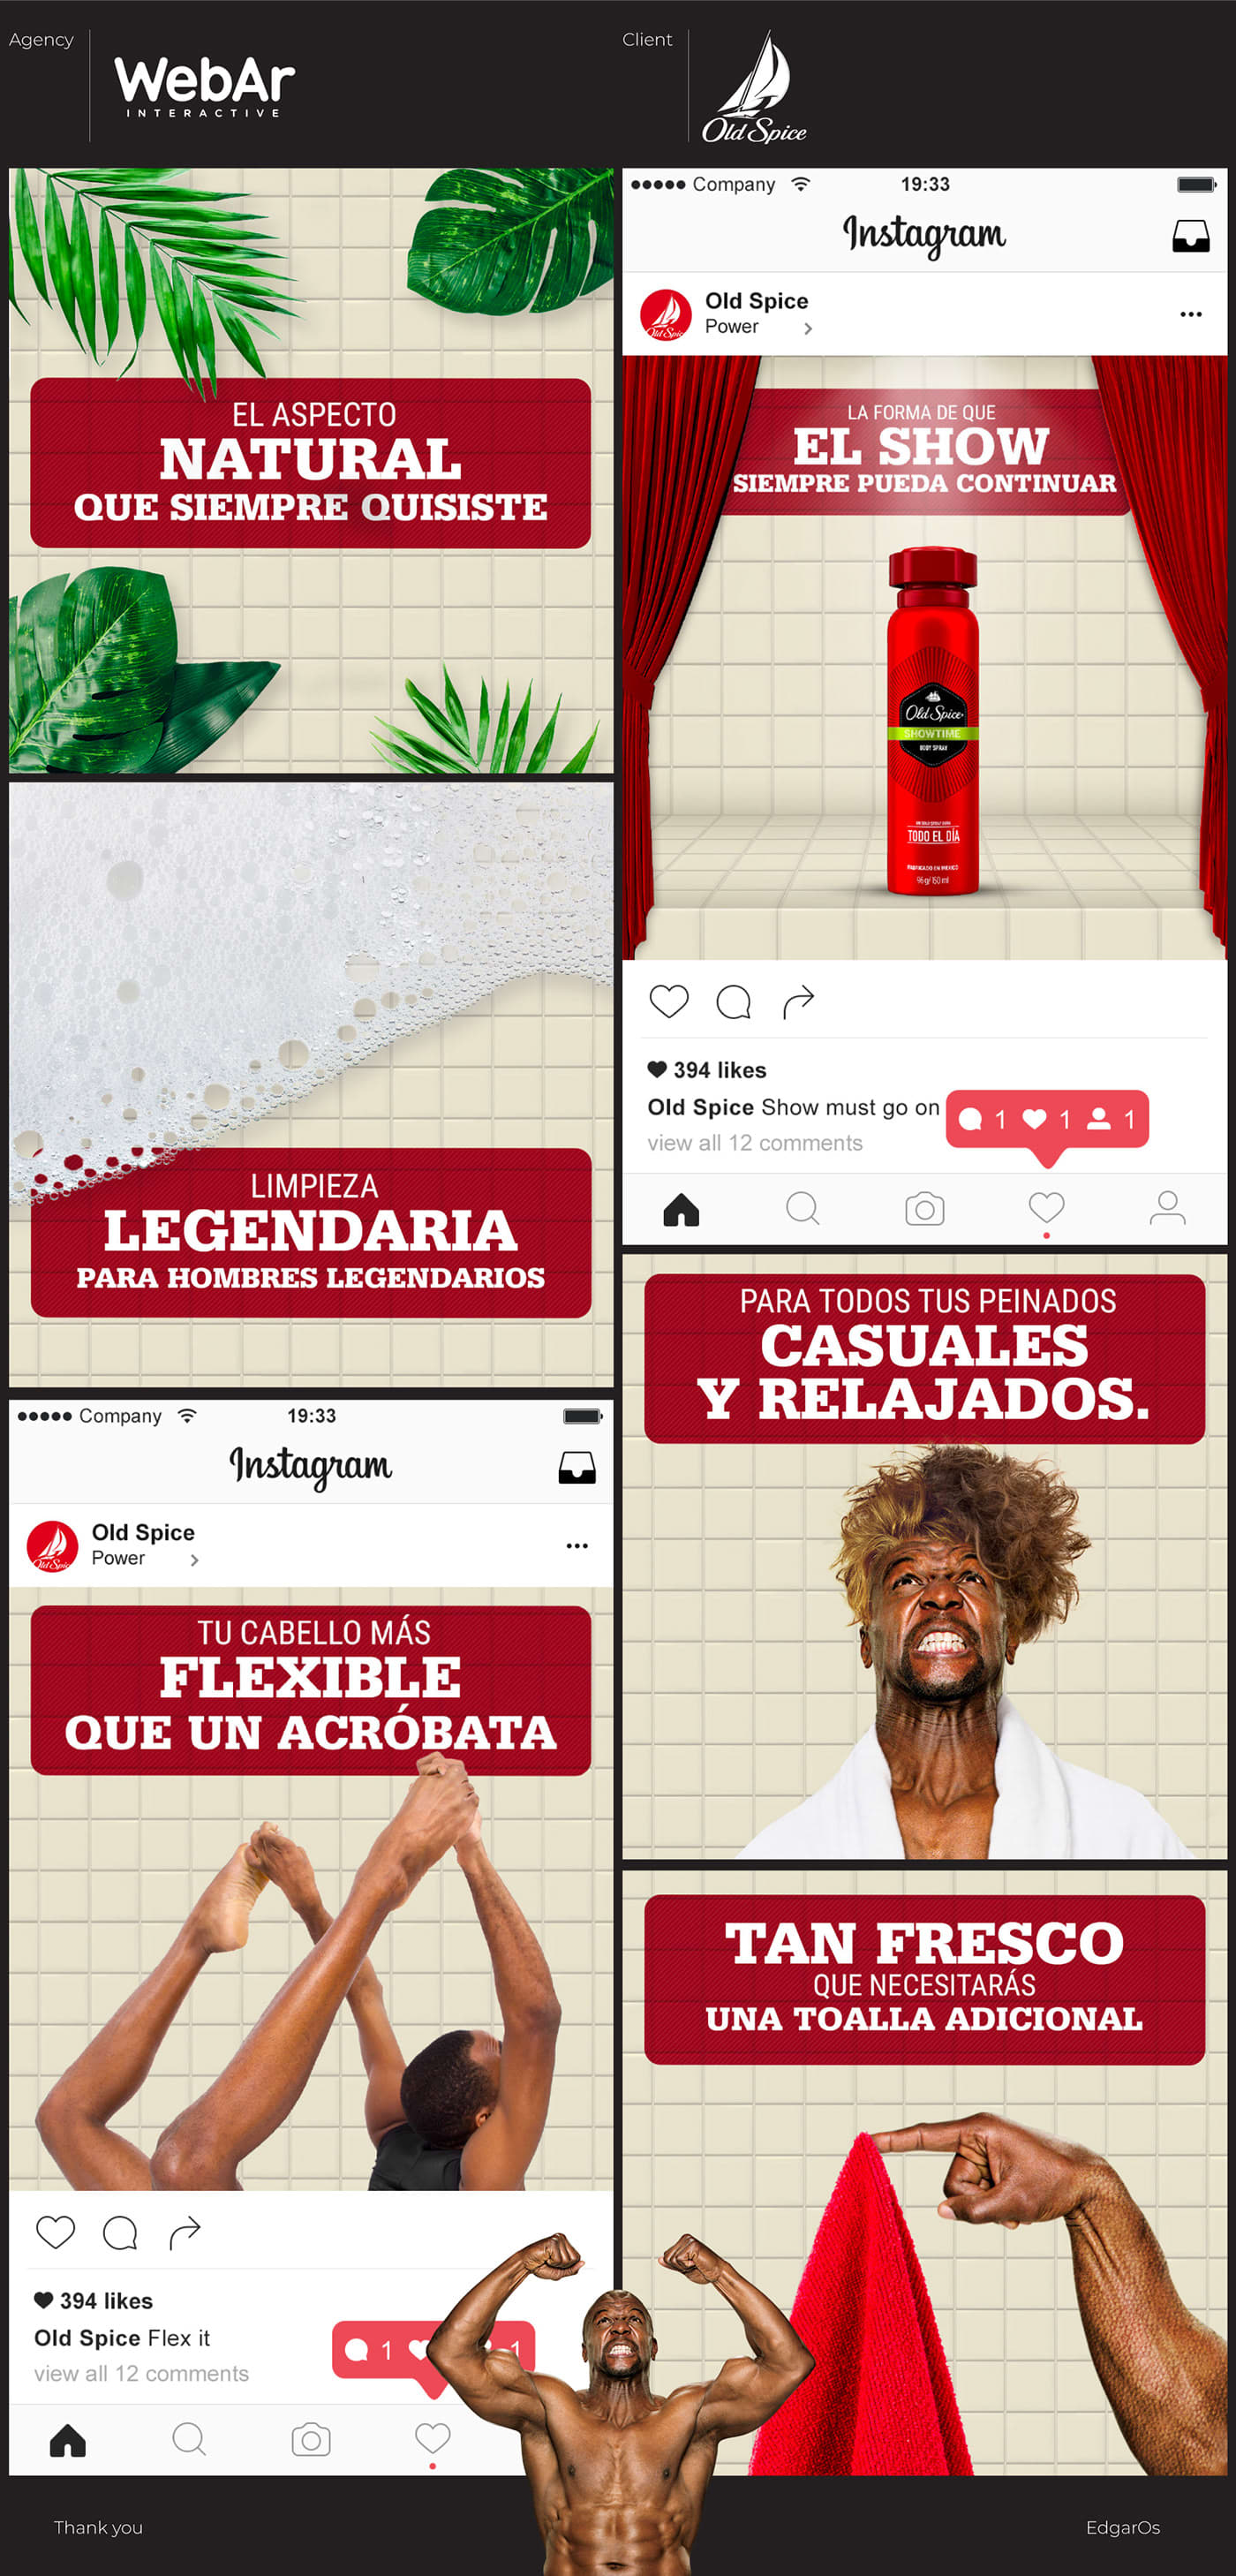 Old Spice e-site and social media images